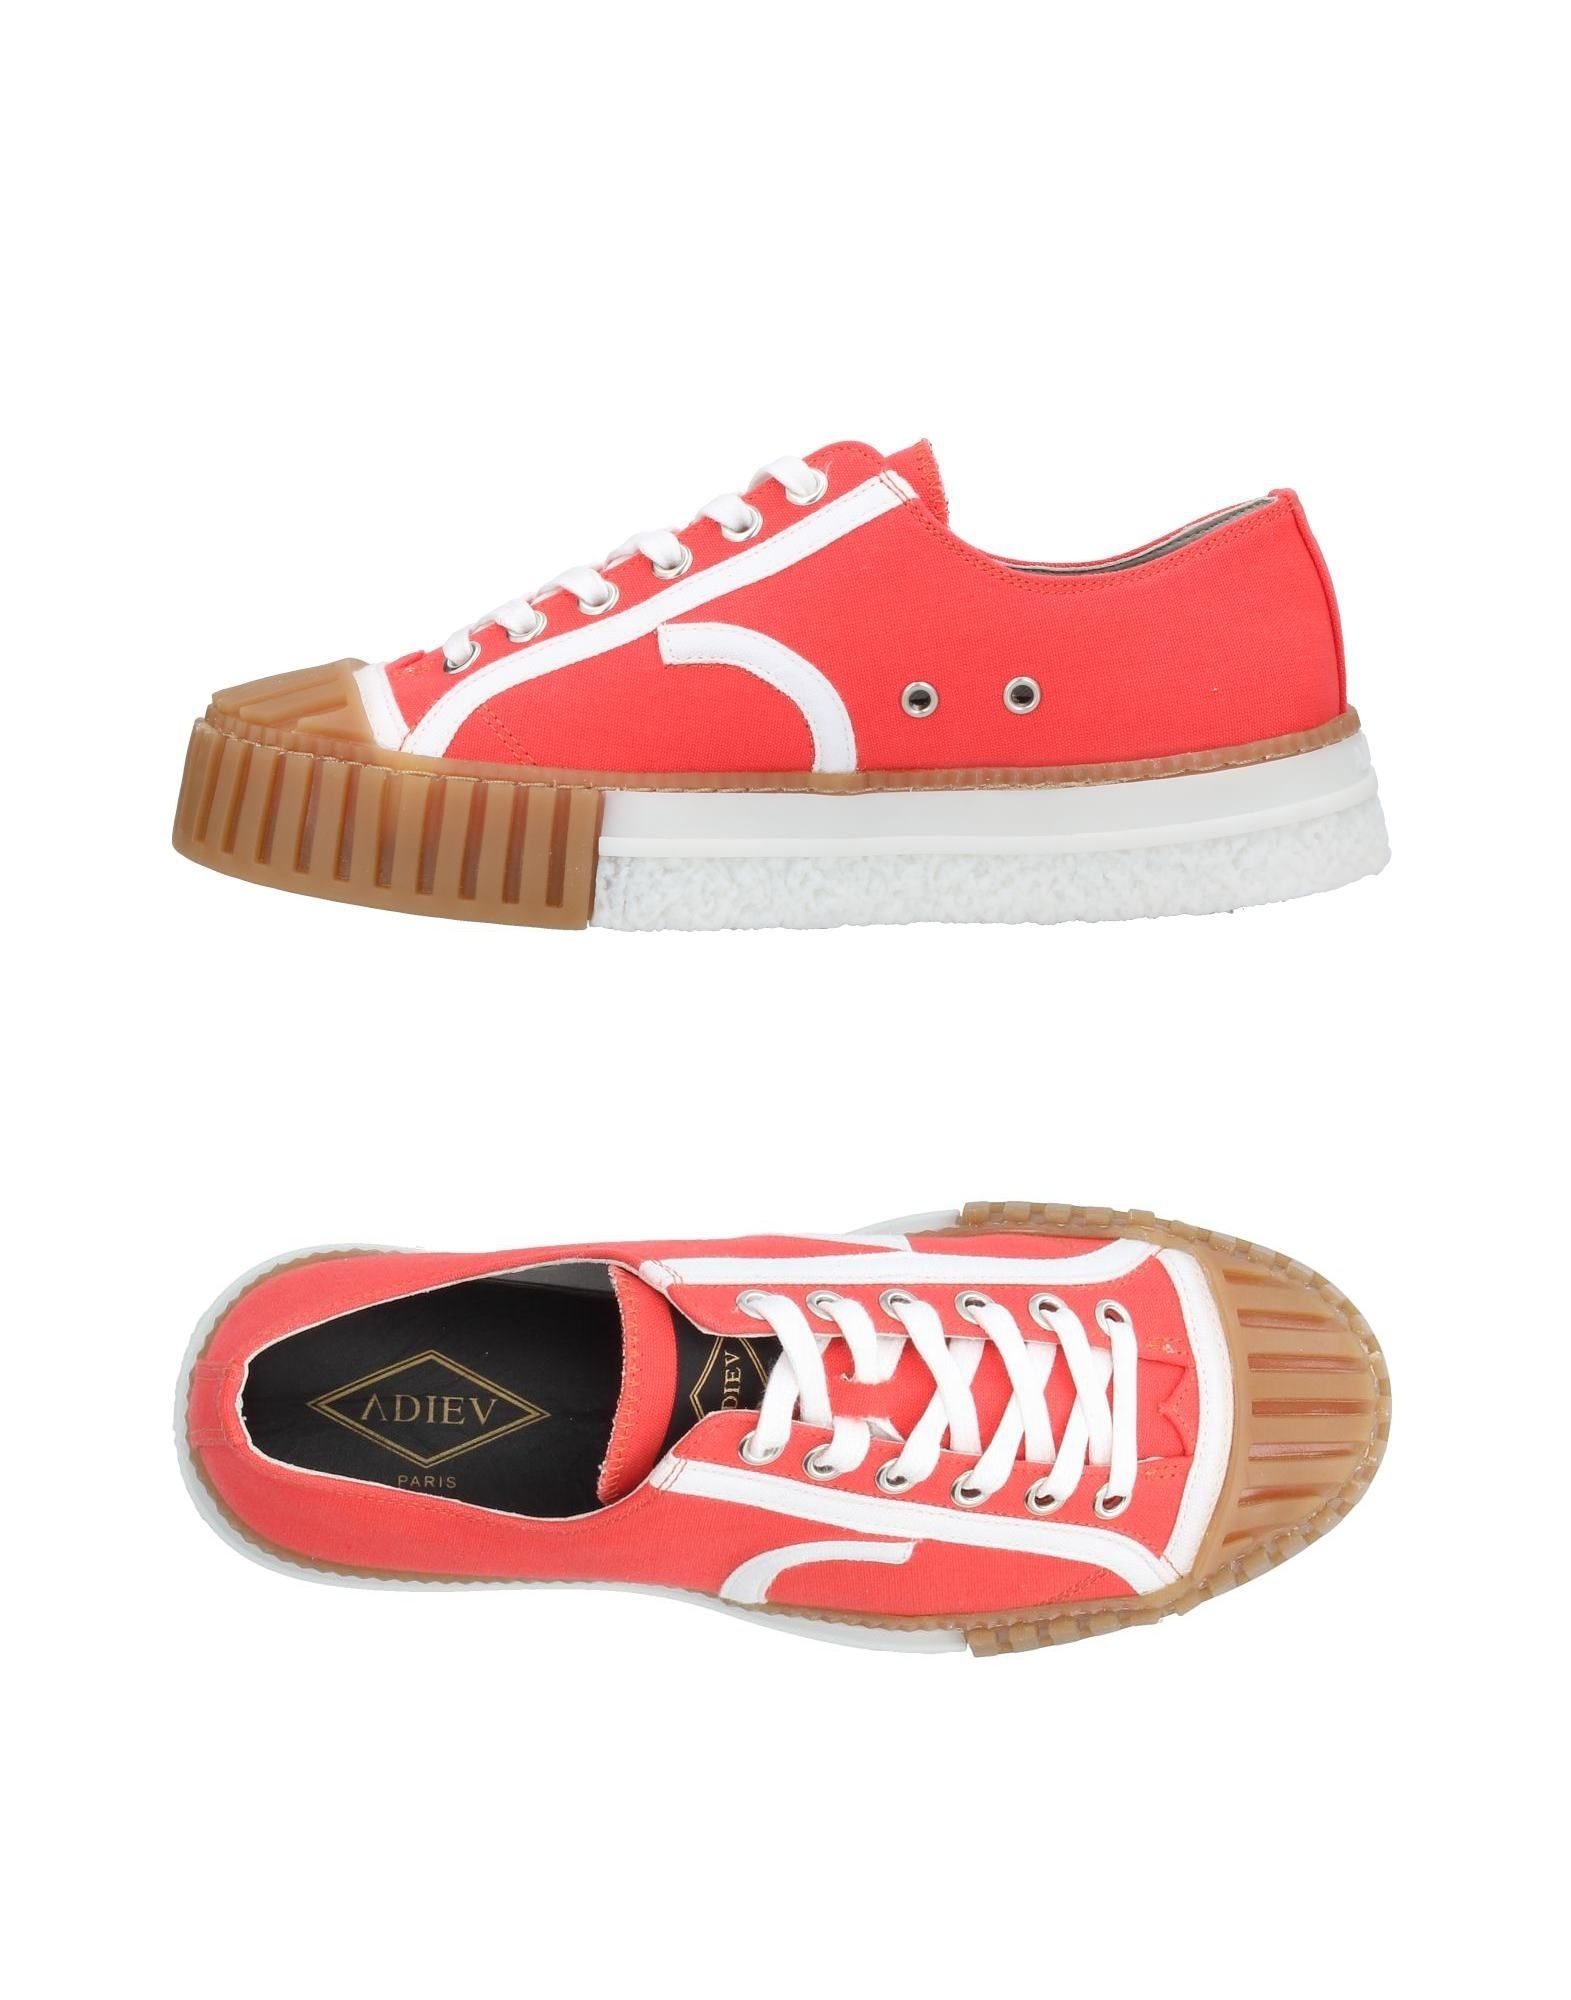 Adieu Sneakers - Women Adieu Sneakers online on 11391017MI  United Kingdom - 11391017MI on c21c13